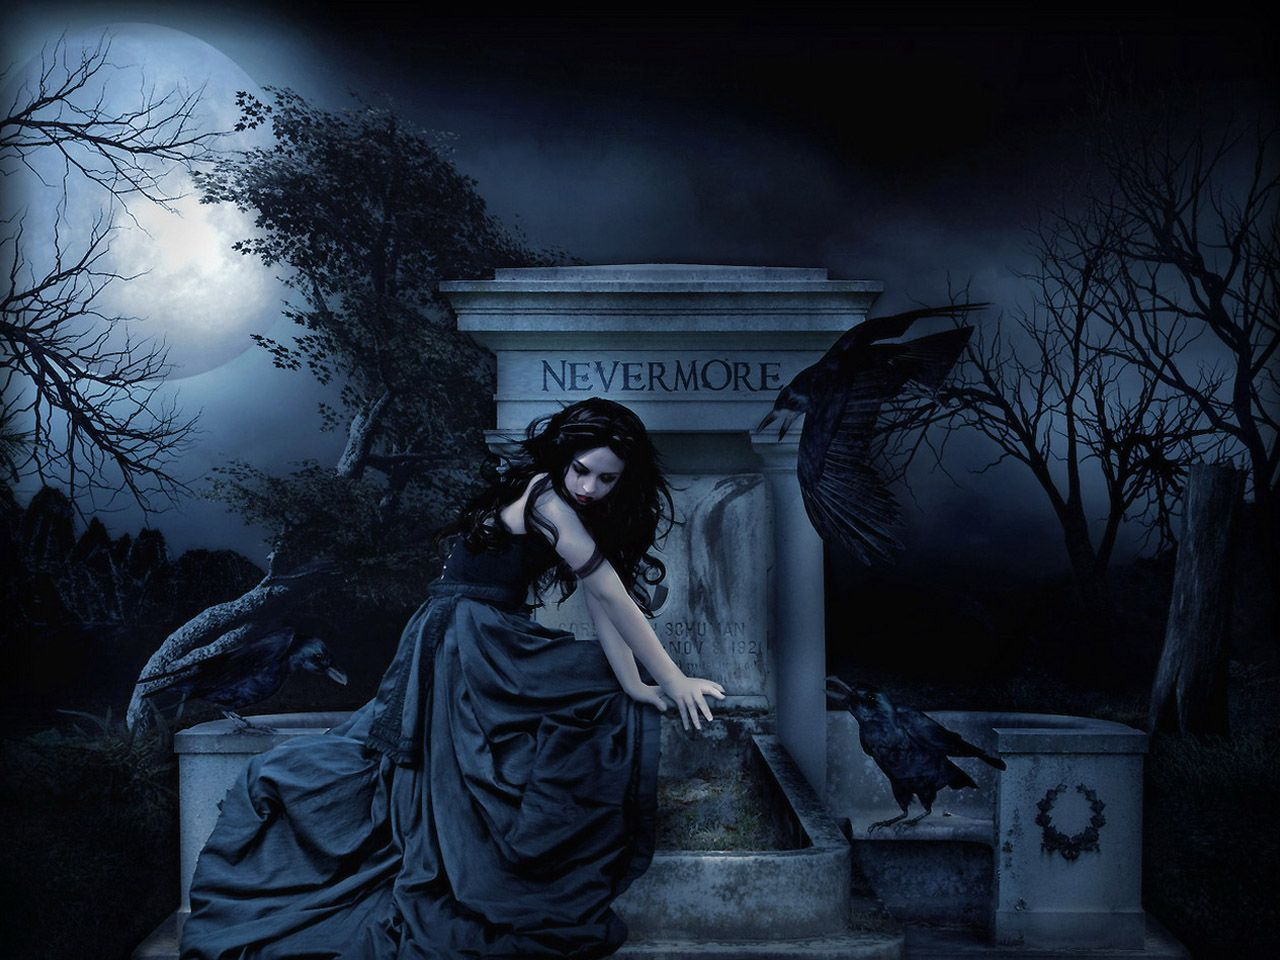 Alone Boy Scary Gothic Tomb Beautiful Beauty Clouds Dark